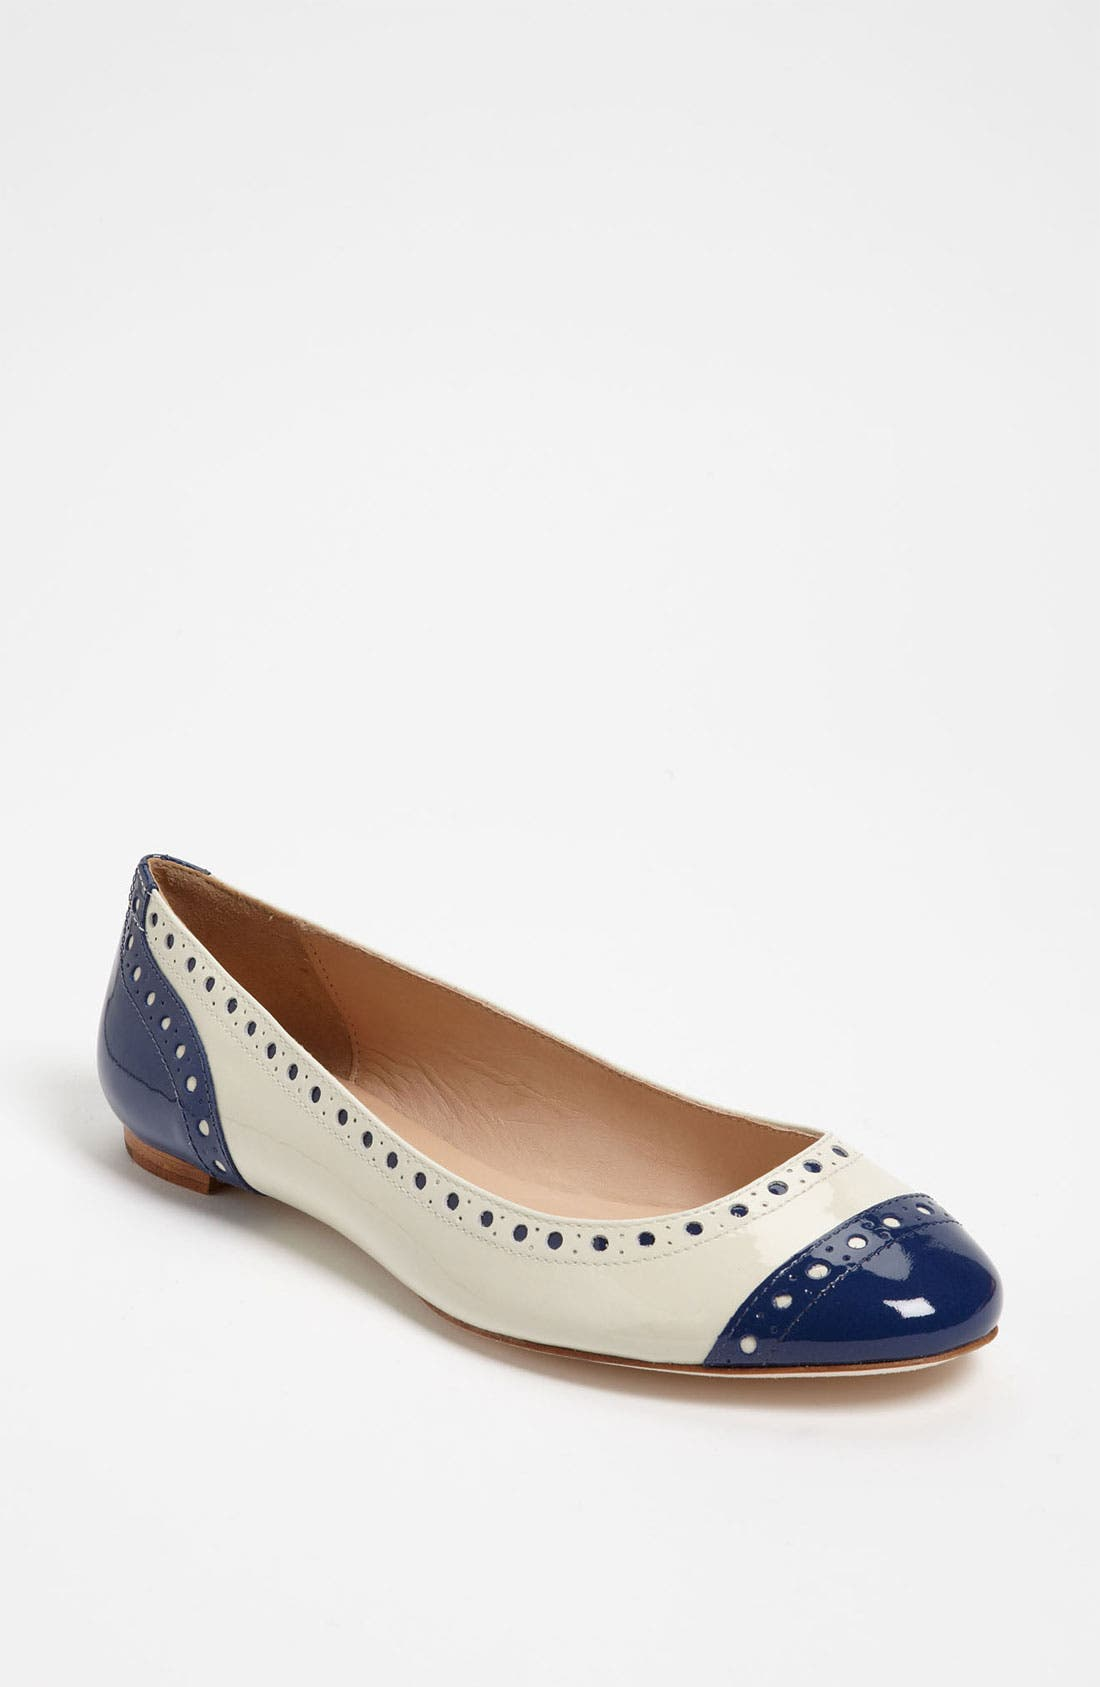 Alternate Image 1 Selected - kate spade new york 'tuttie' flat